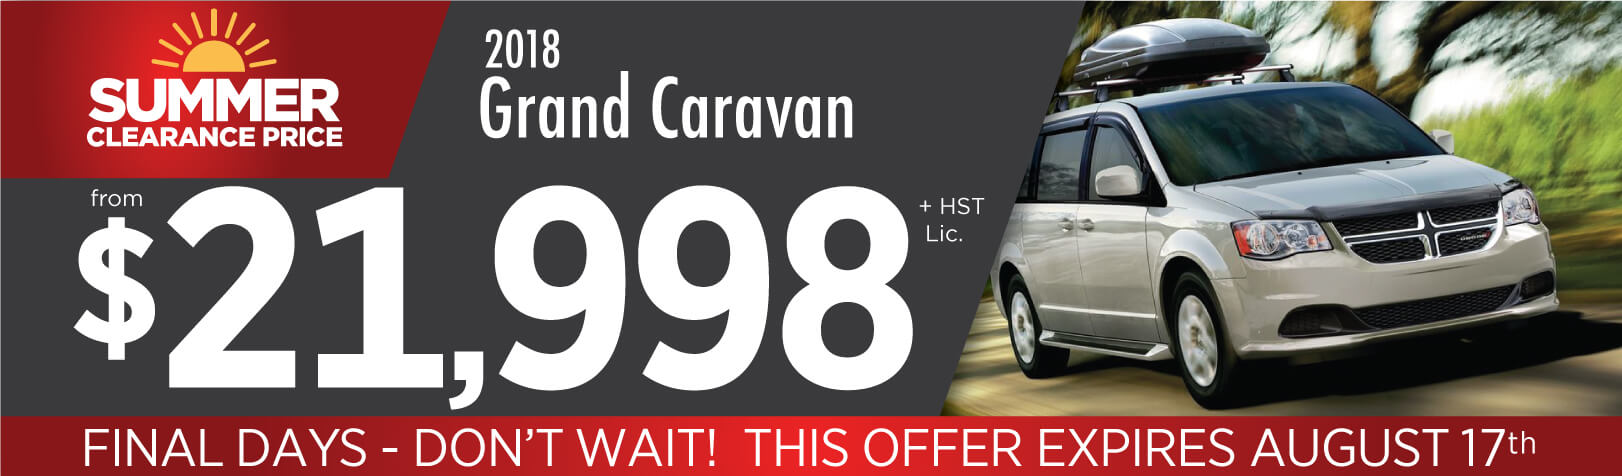 CD-2018-Grand-Caravan-Special-Price-3-Aug-2018